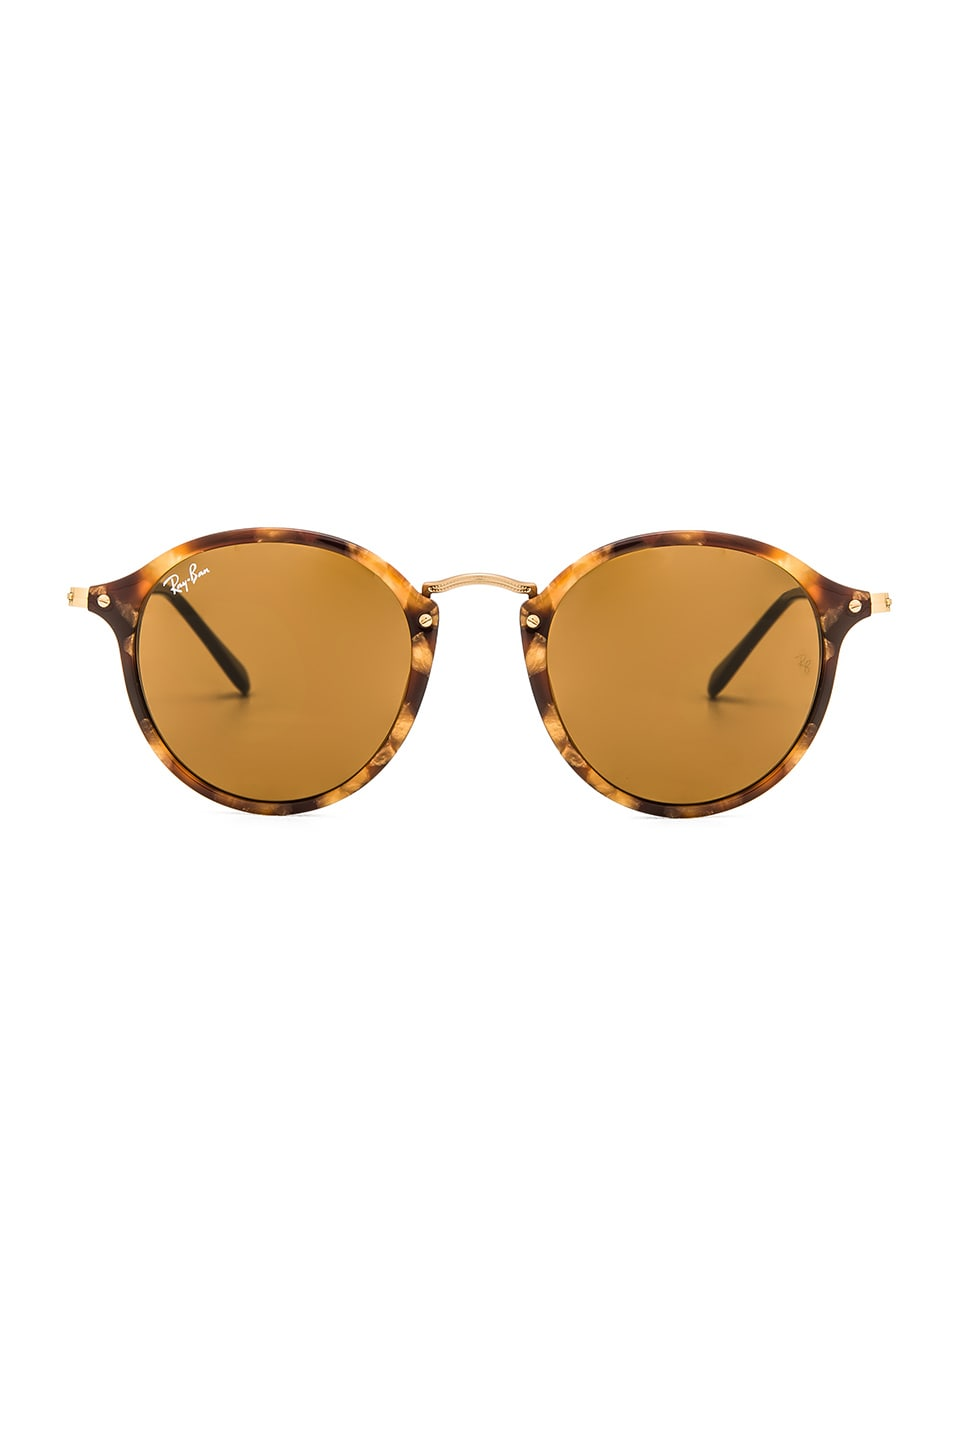 Ray-Ban Round Fleck in Tortoise & Brown Classic B-15